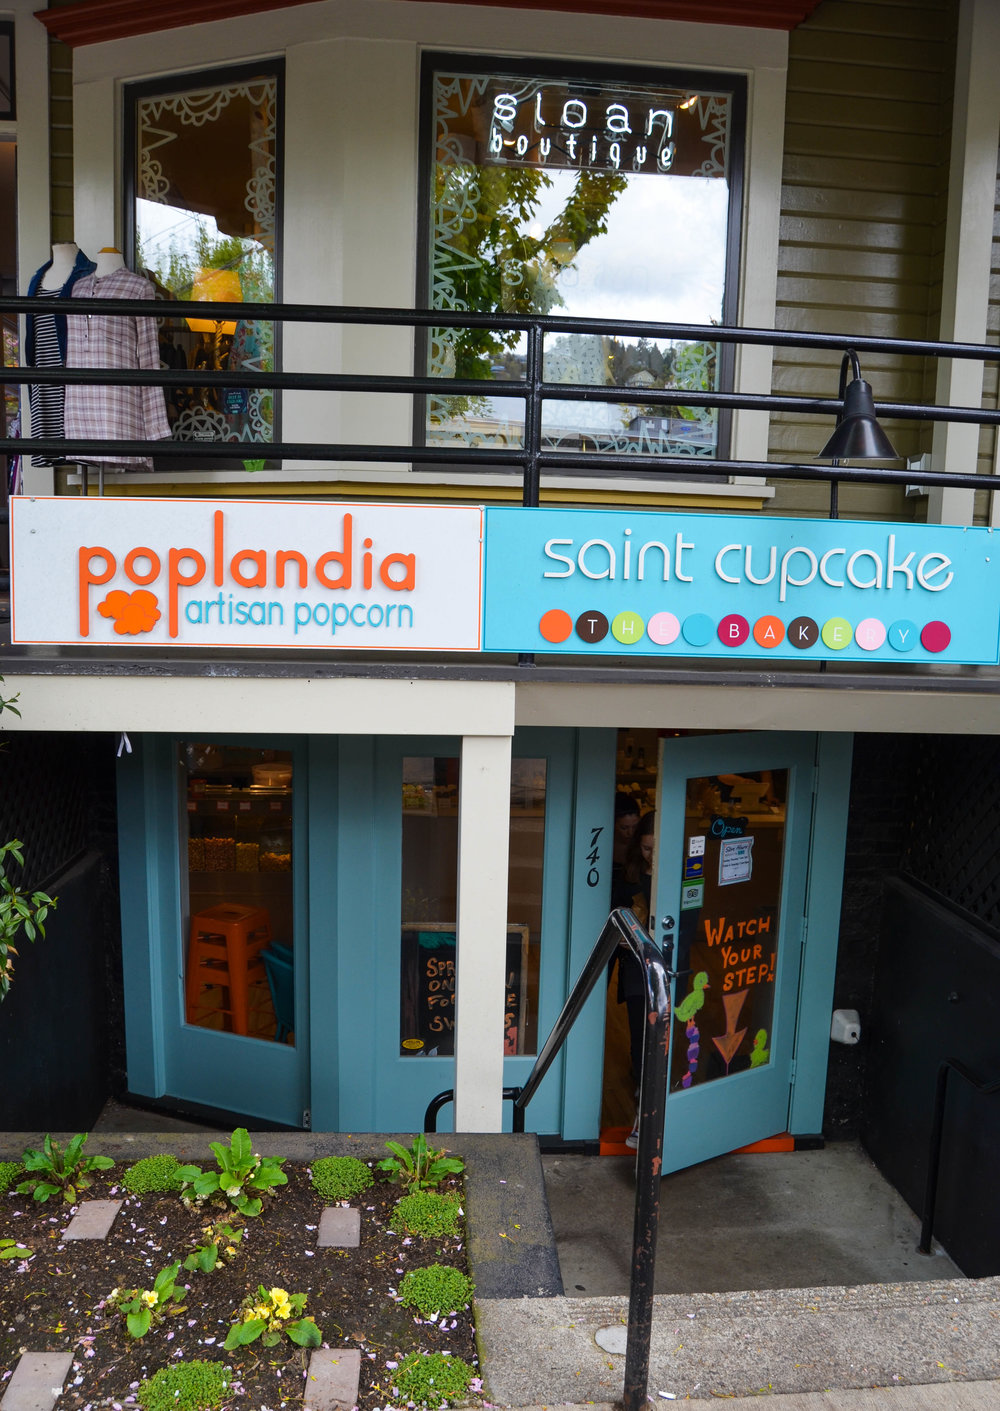 Sloan Boutique on top of Poplandia and St. Cupcake  -738 NW 23rd Ave.